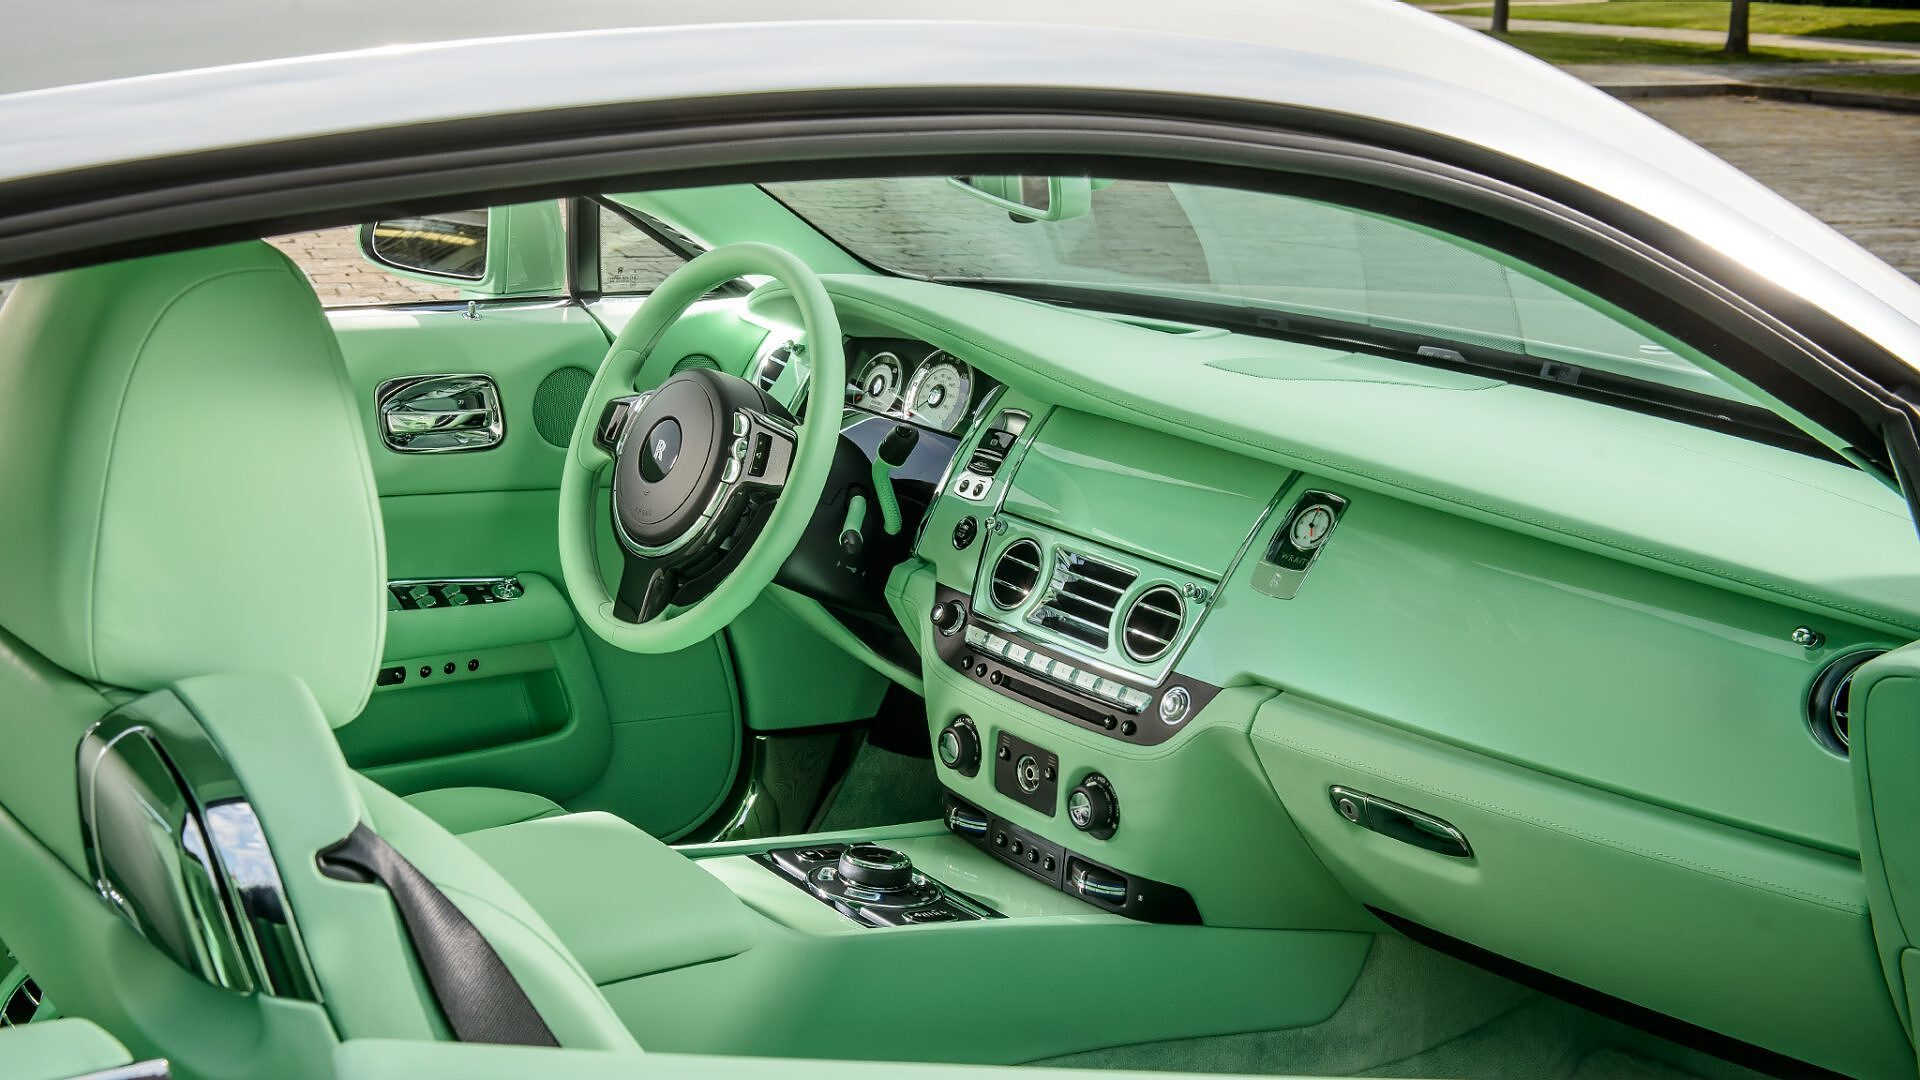 Rolls Royce Car Wallpaper Free Download Rolls Royce Wraith Photo Rollsroyce Wraith Interior Image